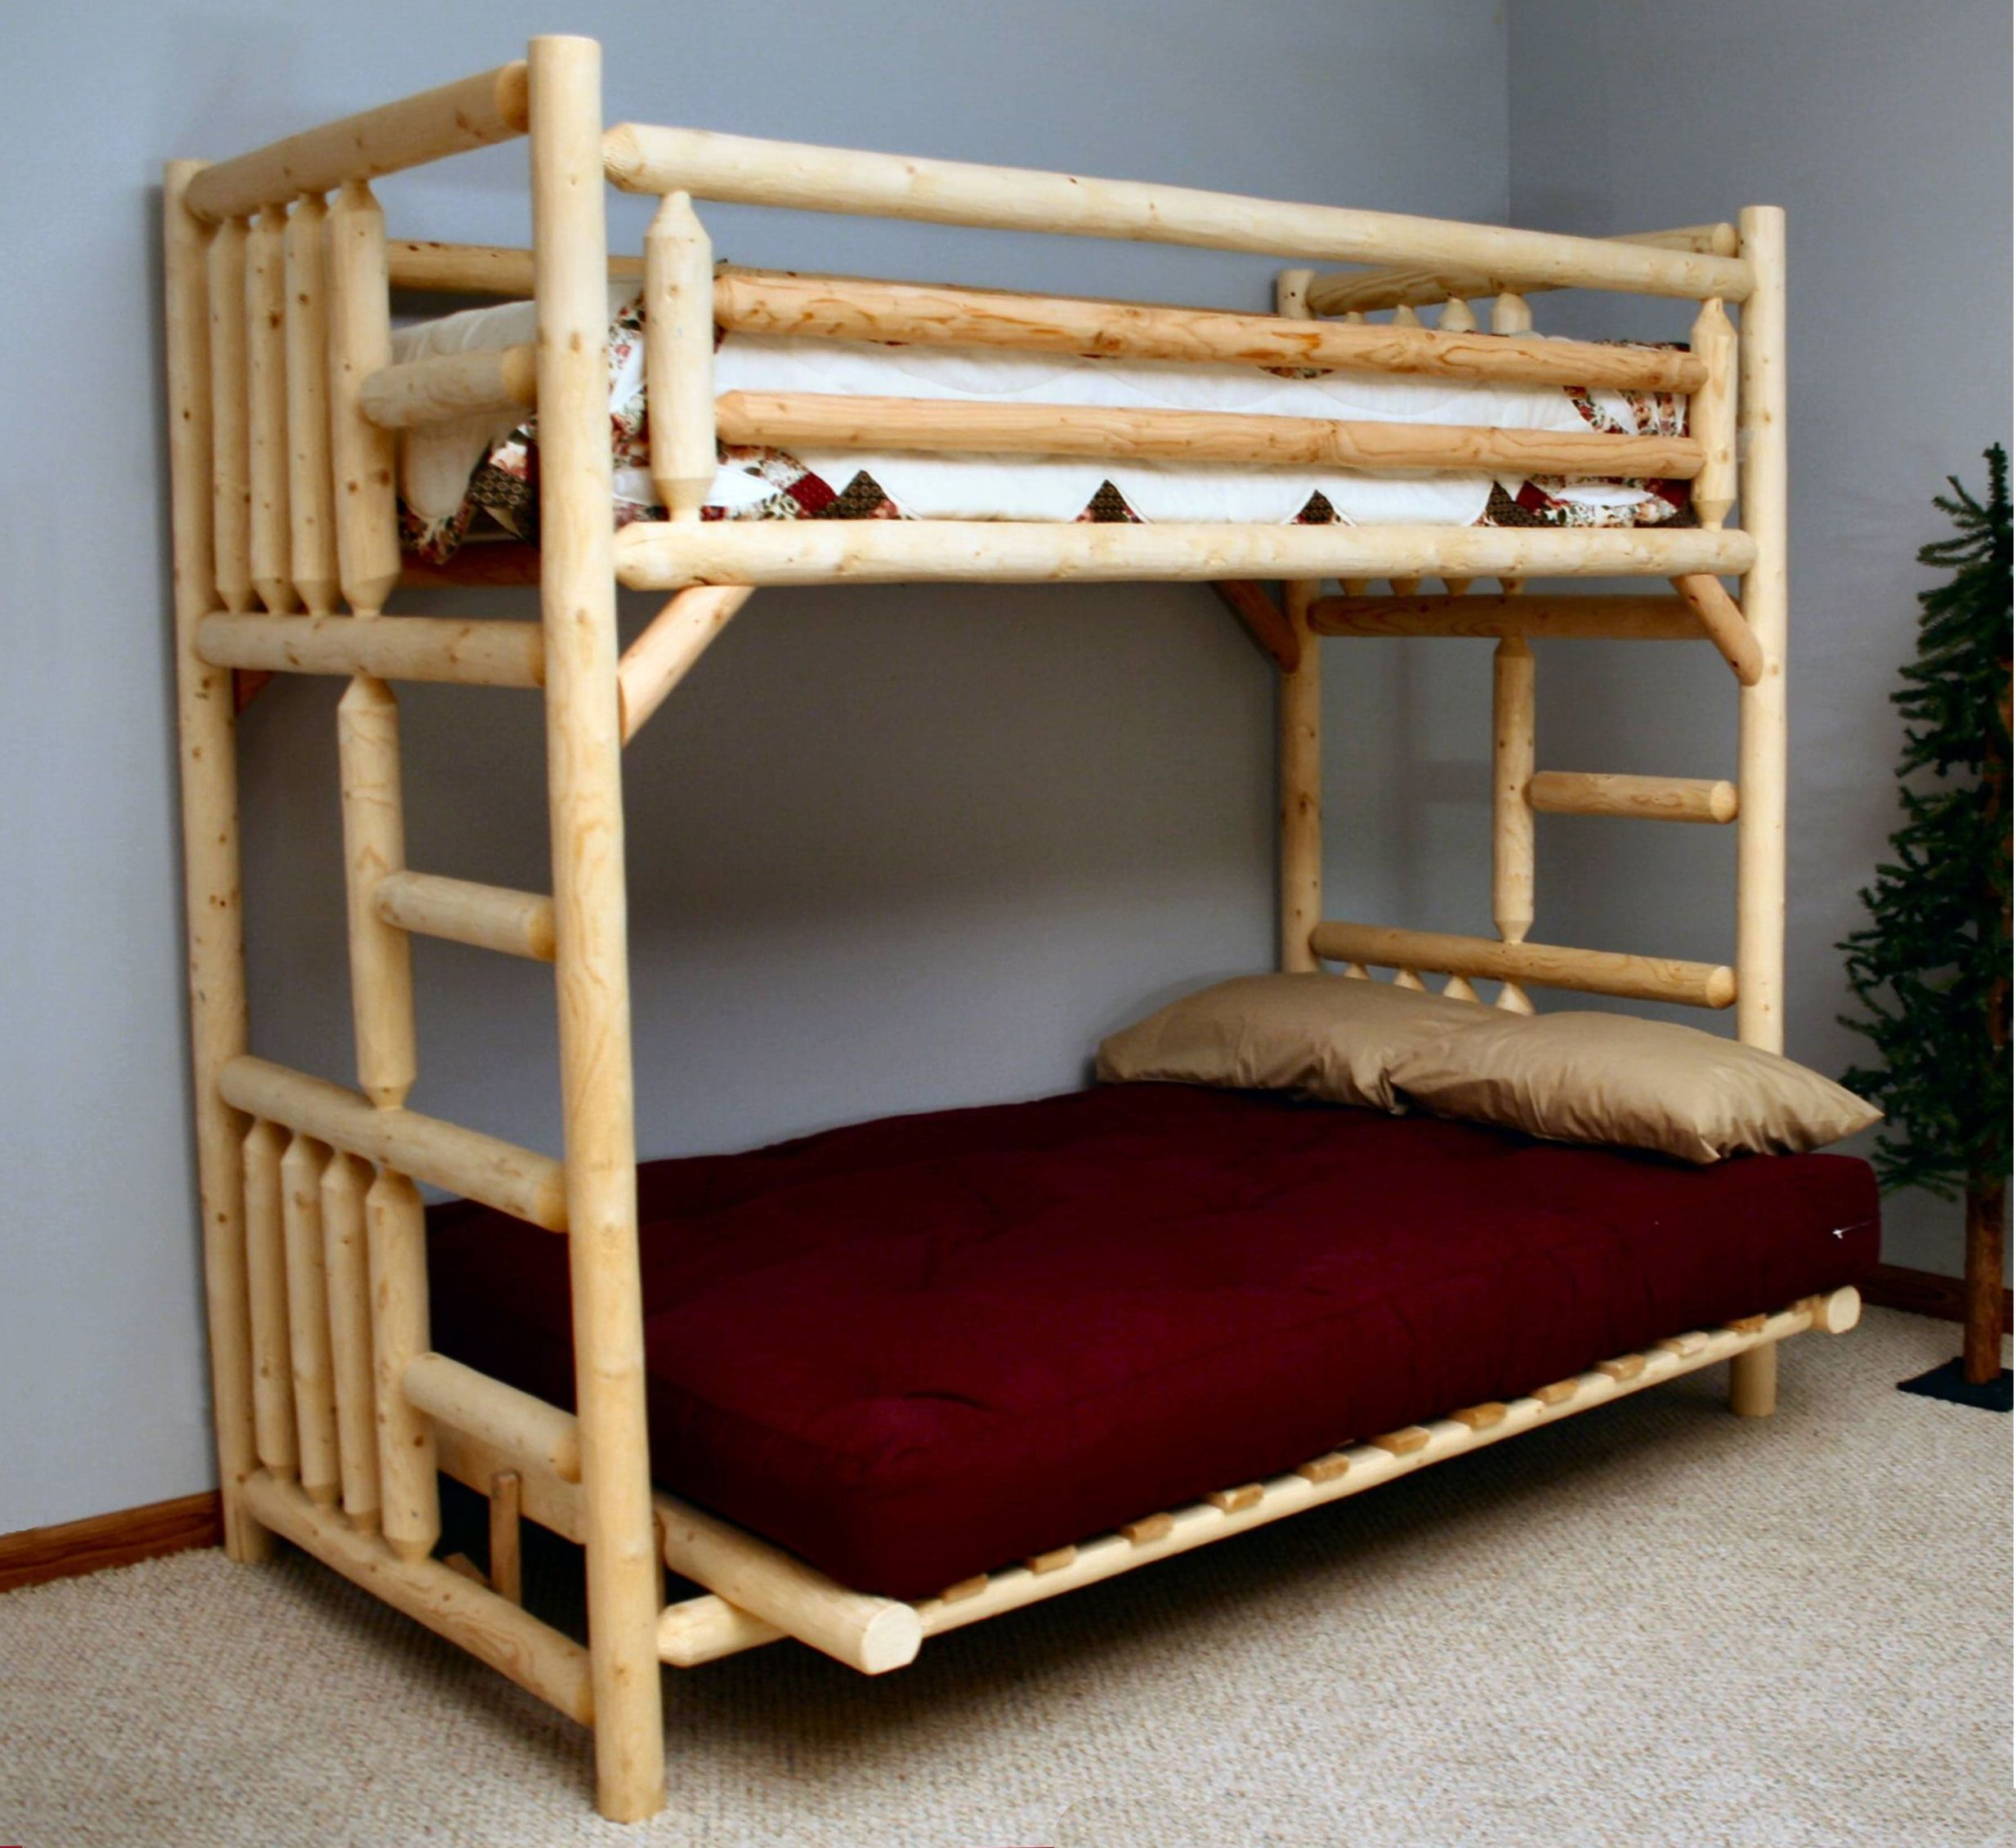 Pin By Haus Design On Furniture Inspiration Bunk Bed Plans